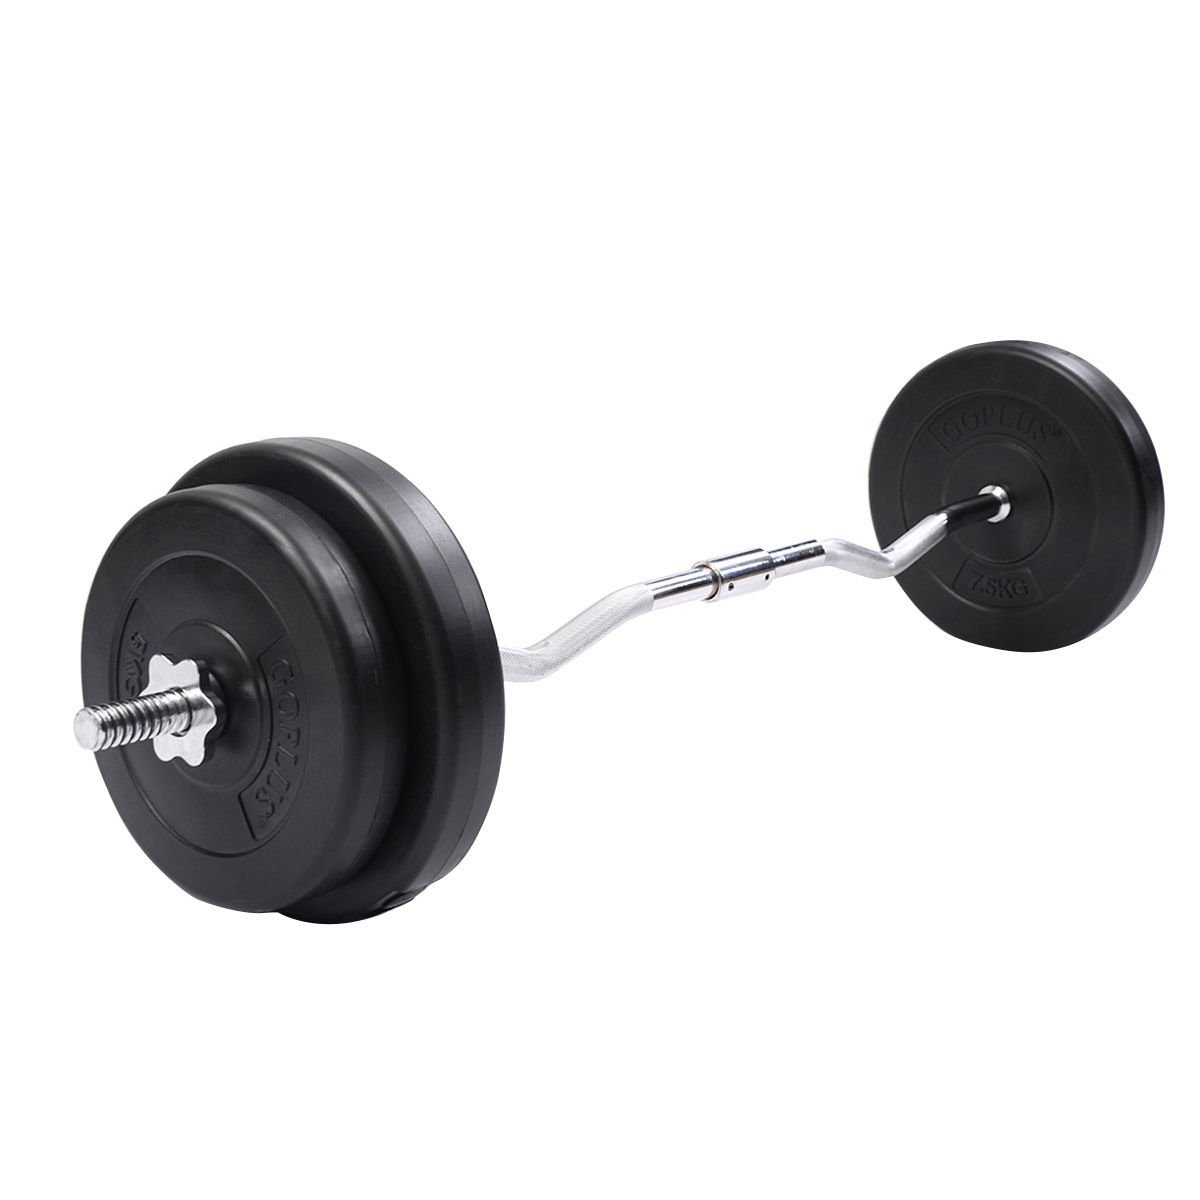 Cheapest Dumbbell Set: Goplus 64 LB Barbell Dumbbell Weight Set Gym Lifting